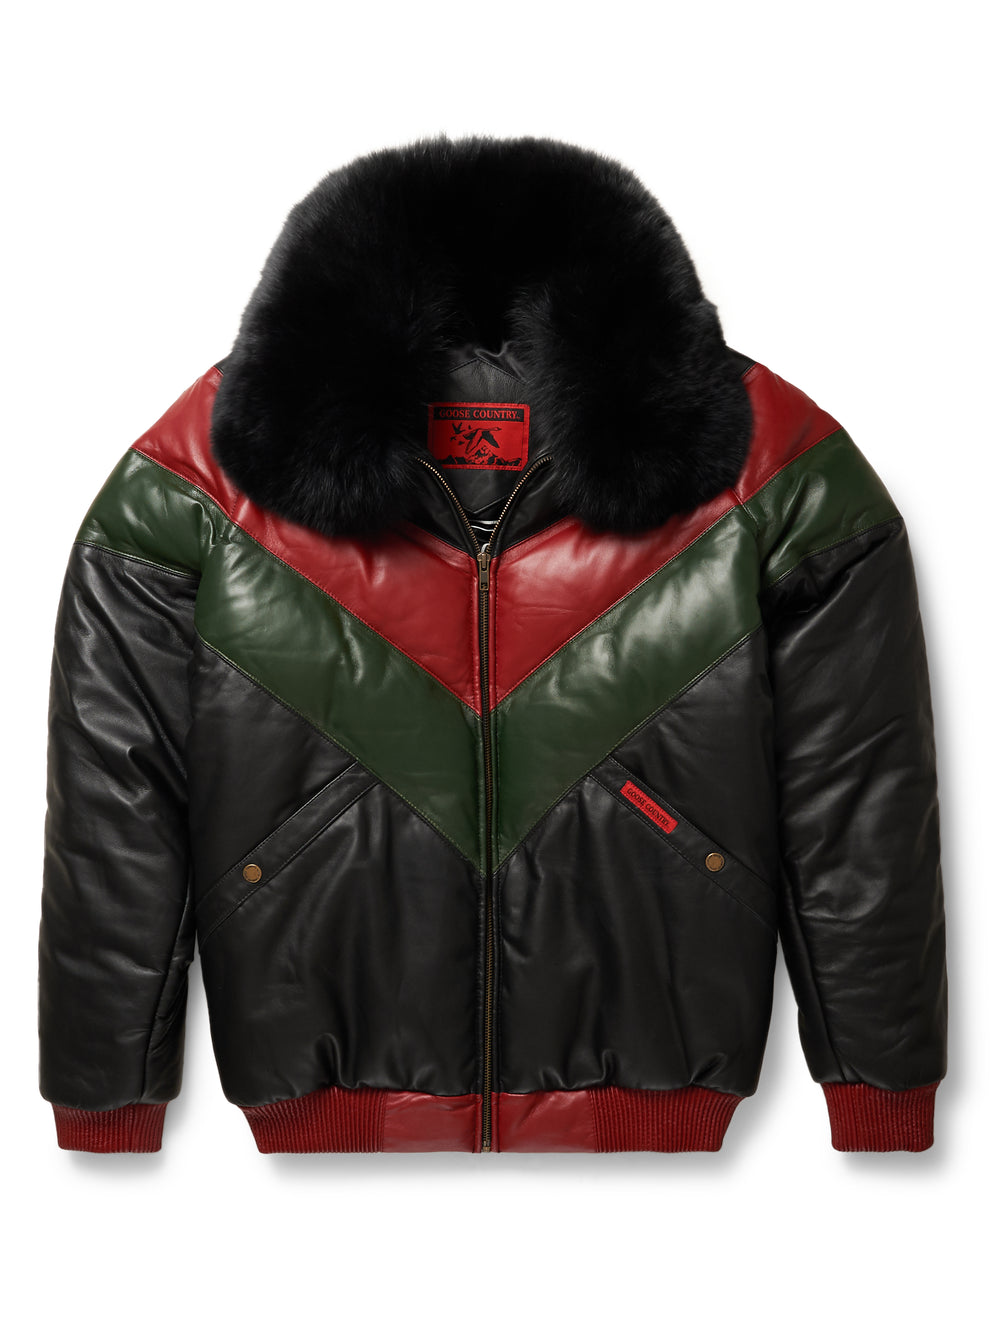 721cd0be846 Goose Country V-Bomber Leather Jacket Two-Tone: Red/Green/Black ...